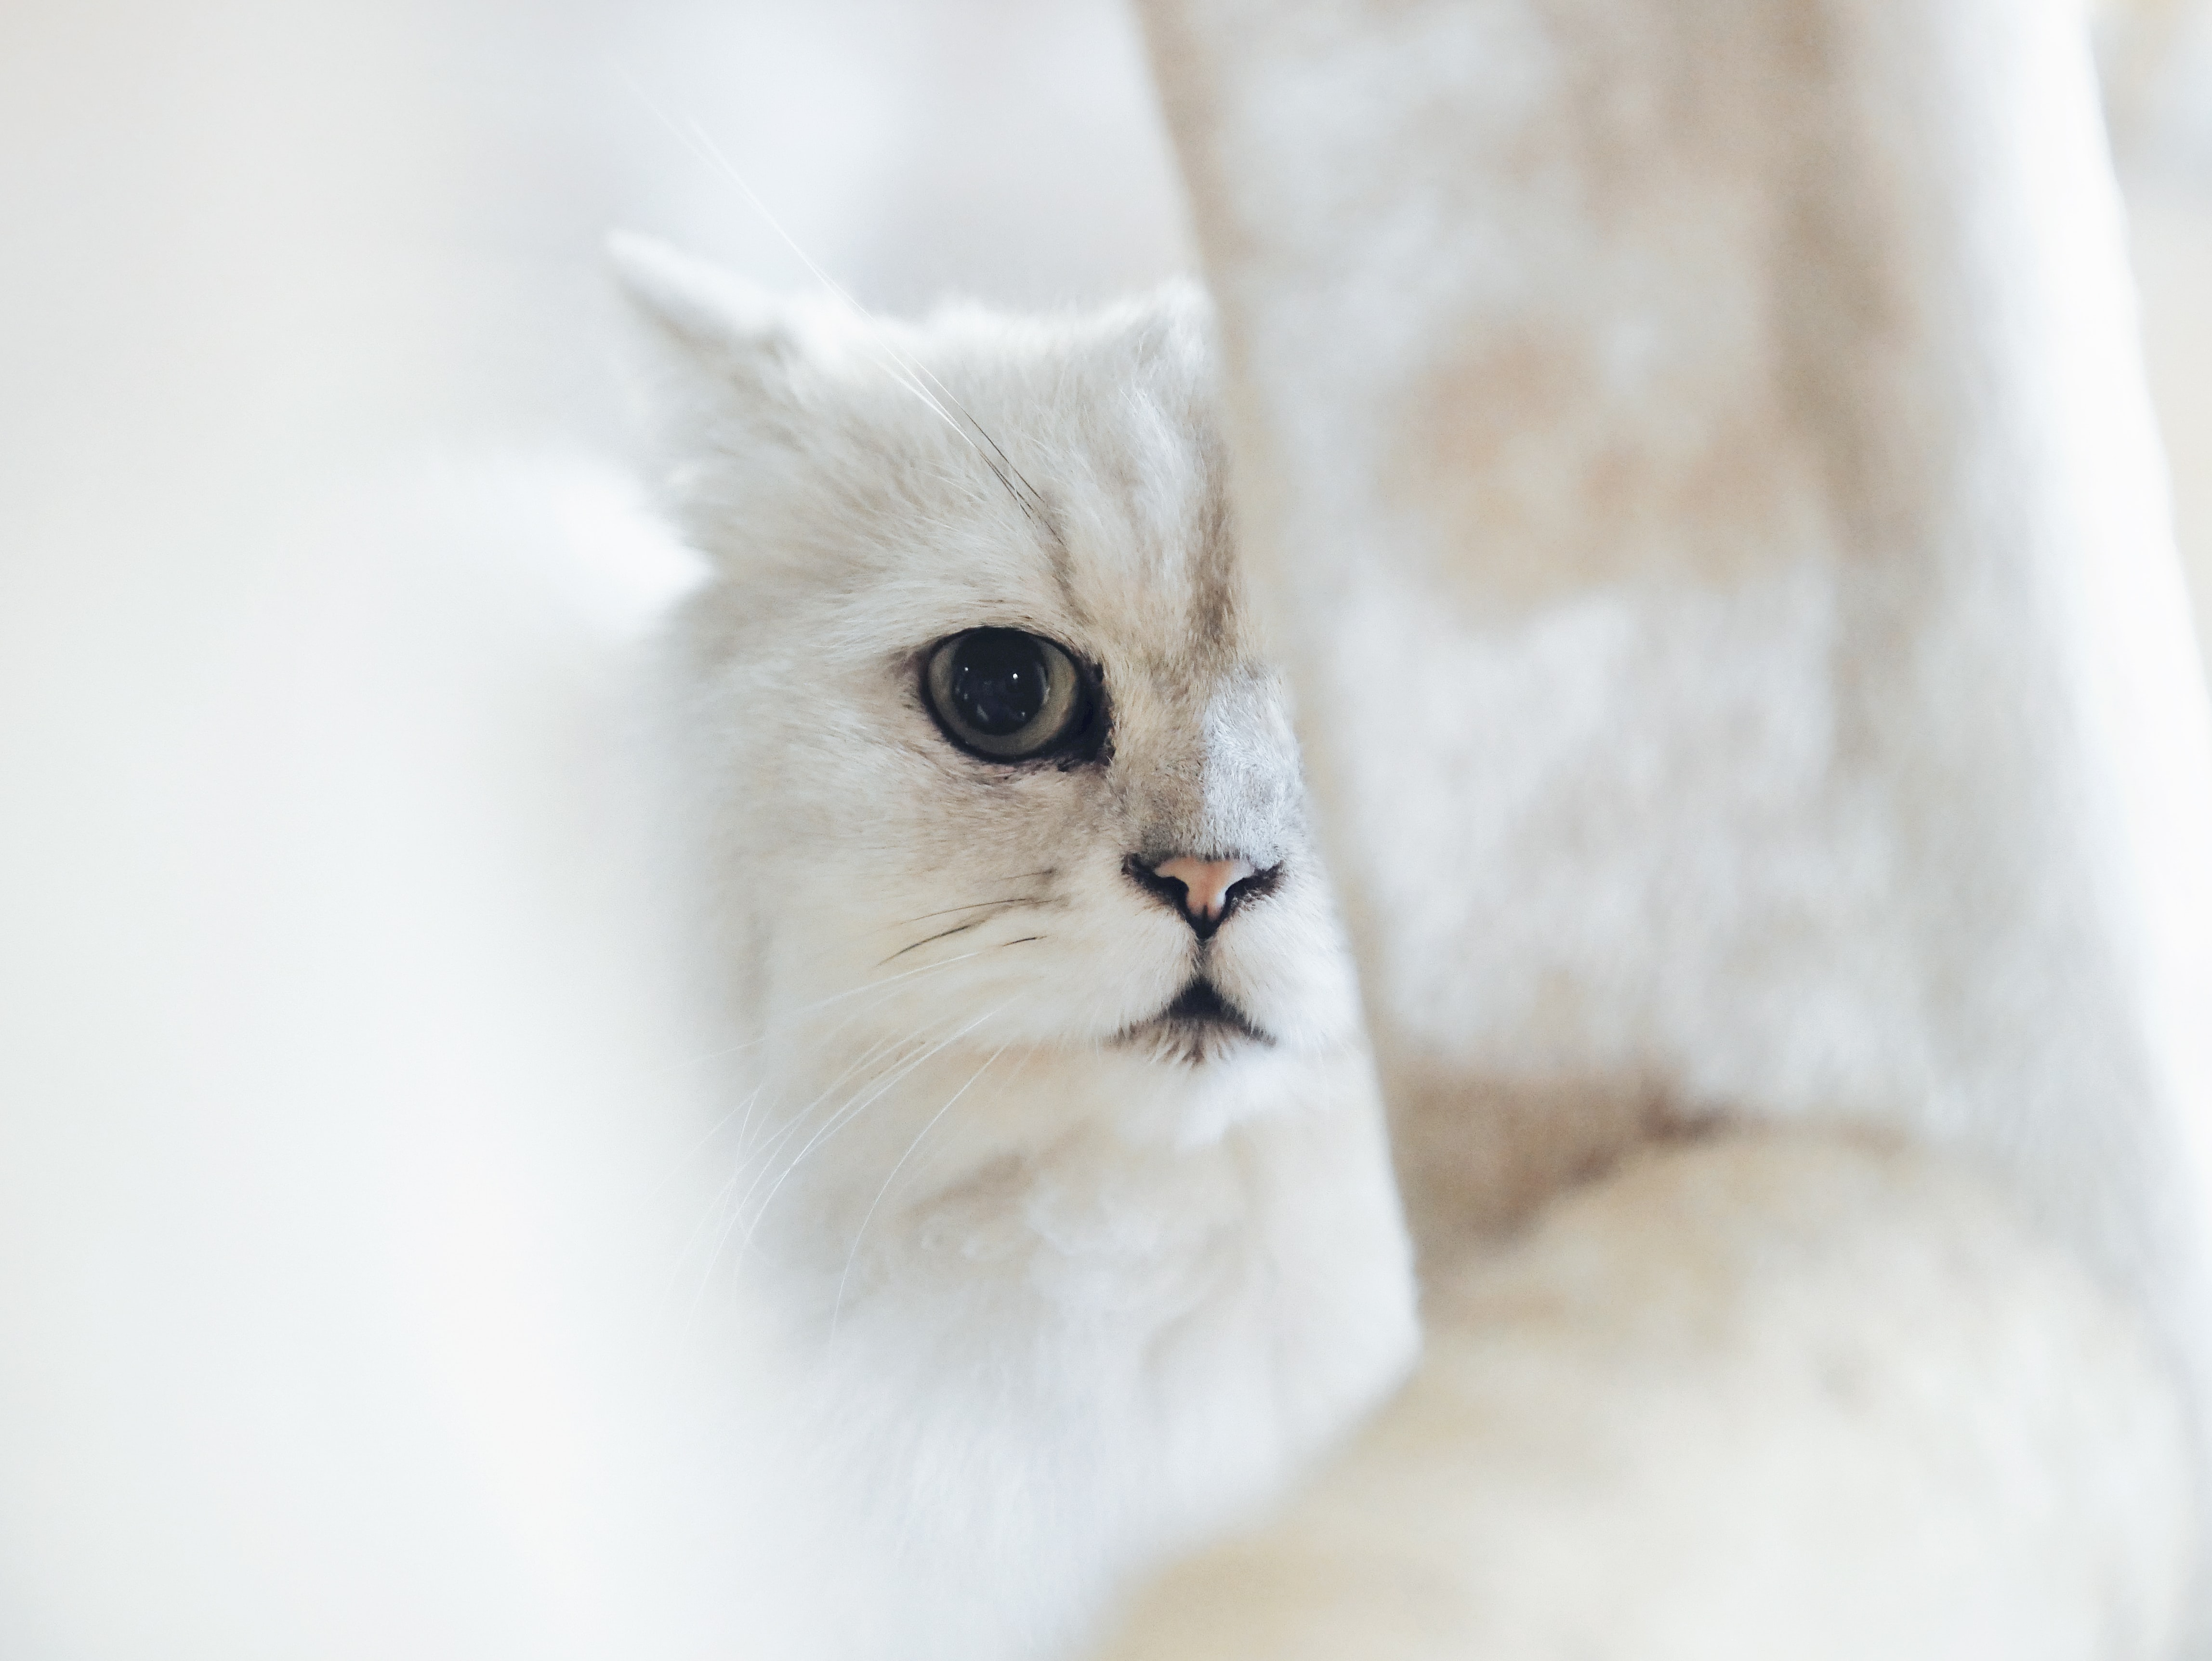 500 White Cat Pictures Hd Download Free Images On Unsplash